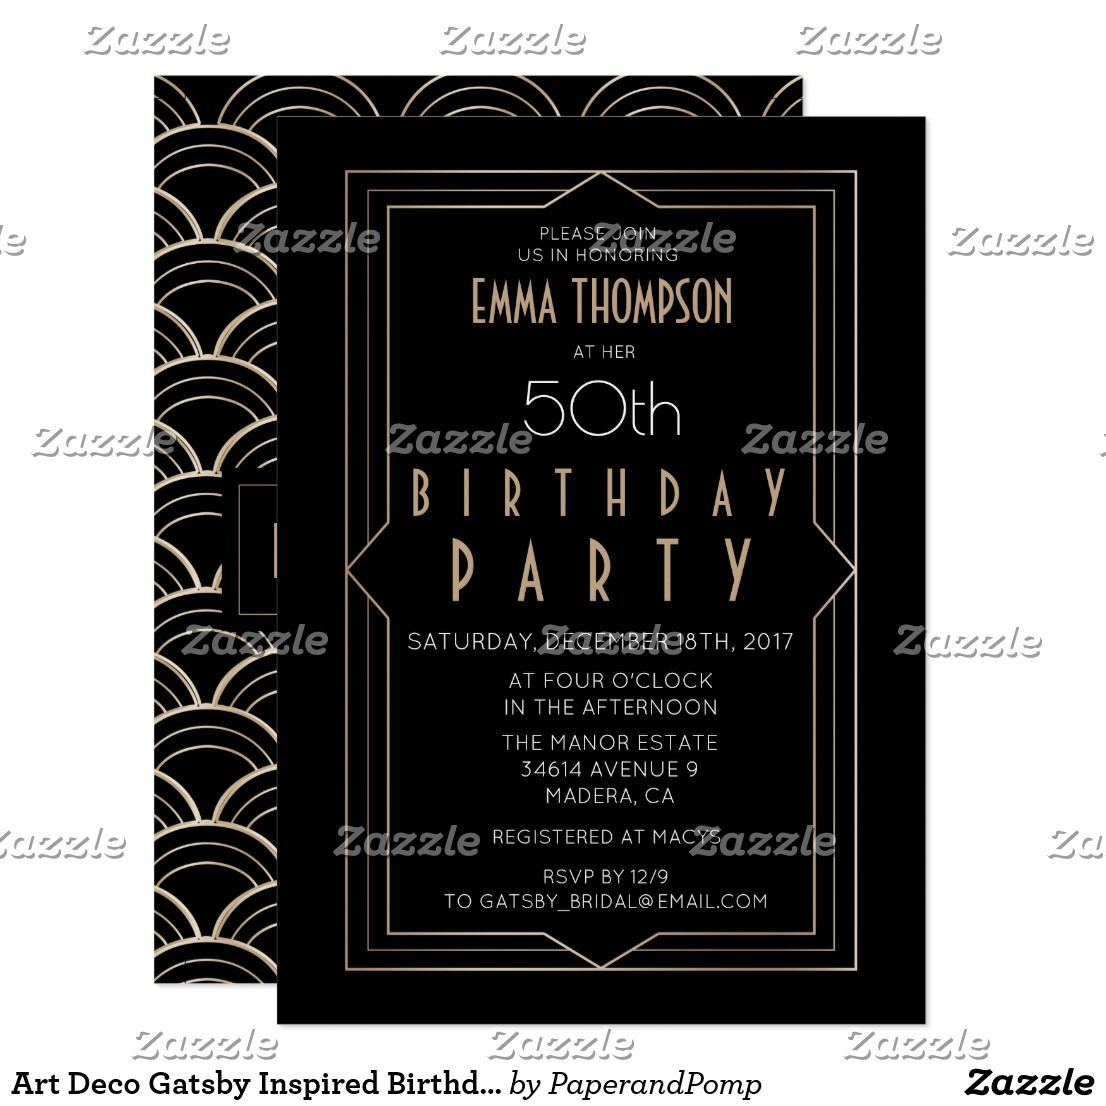 Art Deco Gatsby Inspired Birthday Party Invitation | Invitations ...